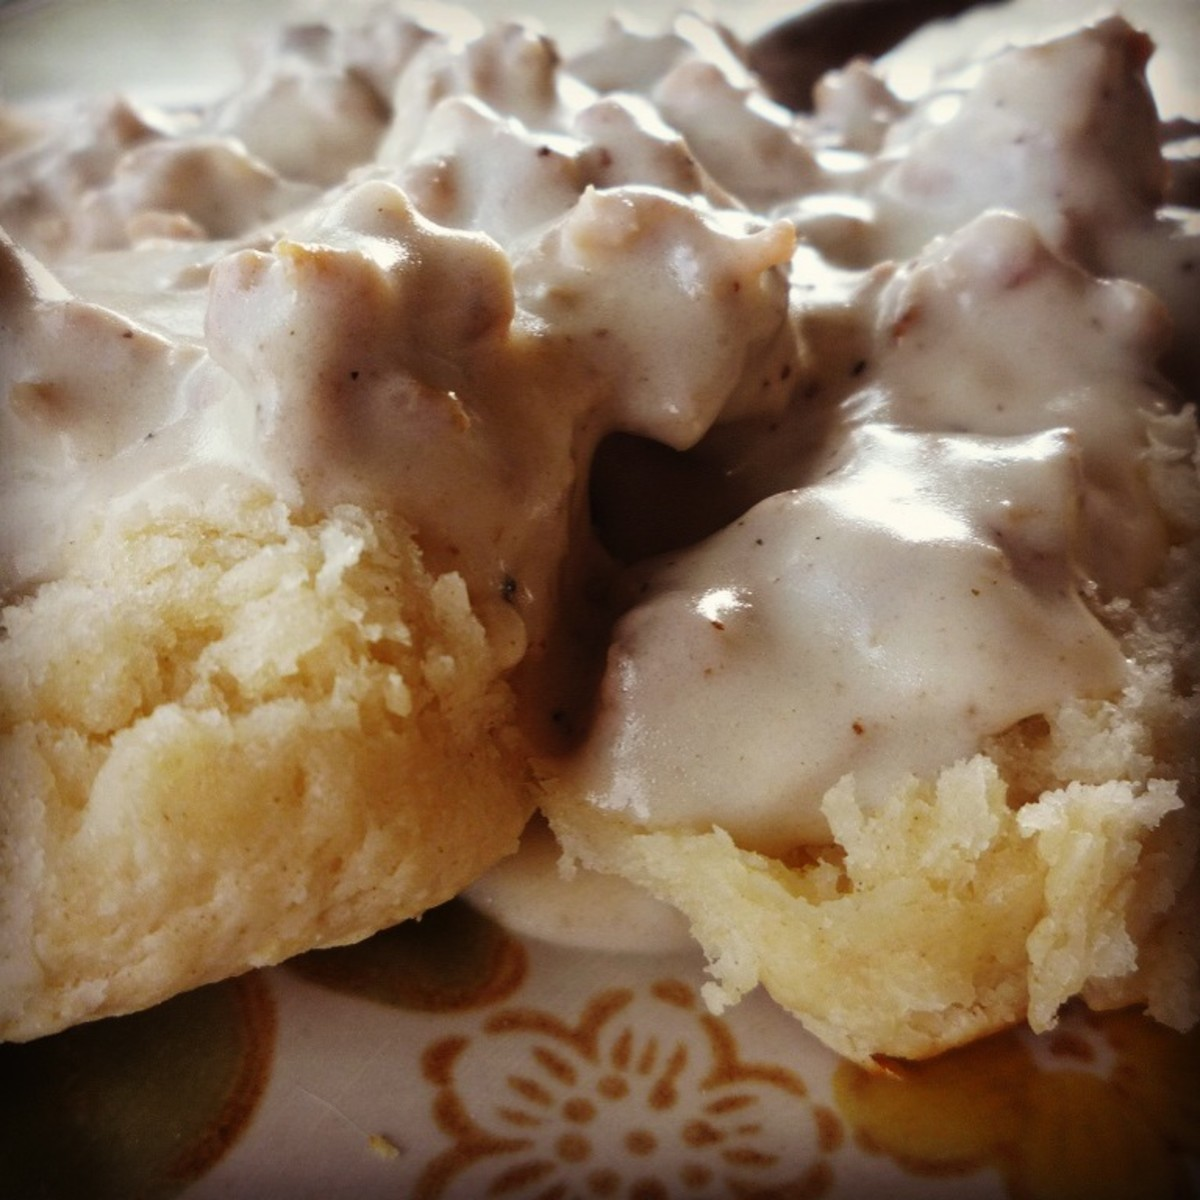 How to Make Easy Homemade Southern Buttermilk Biscuits and Sausage Gravy